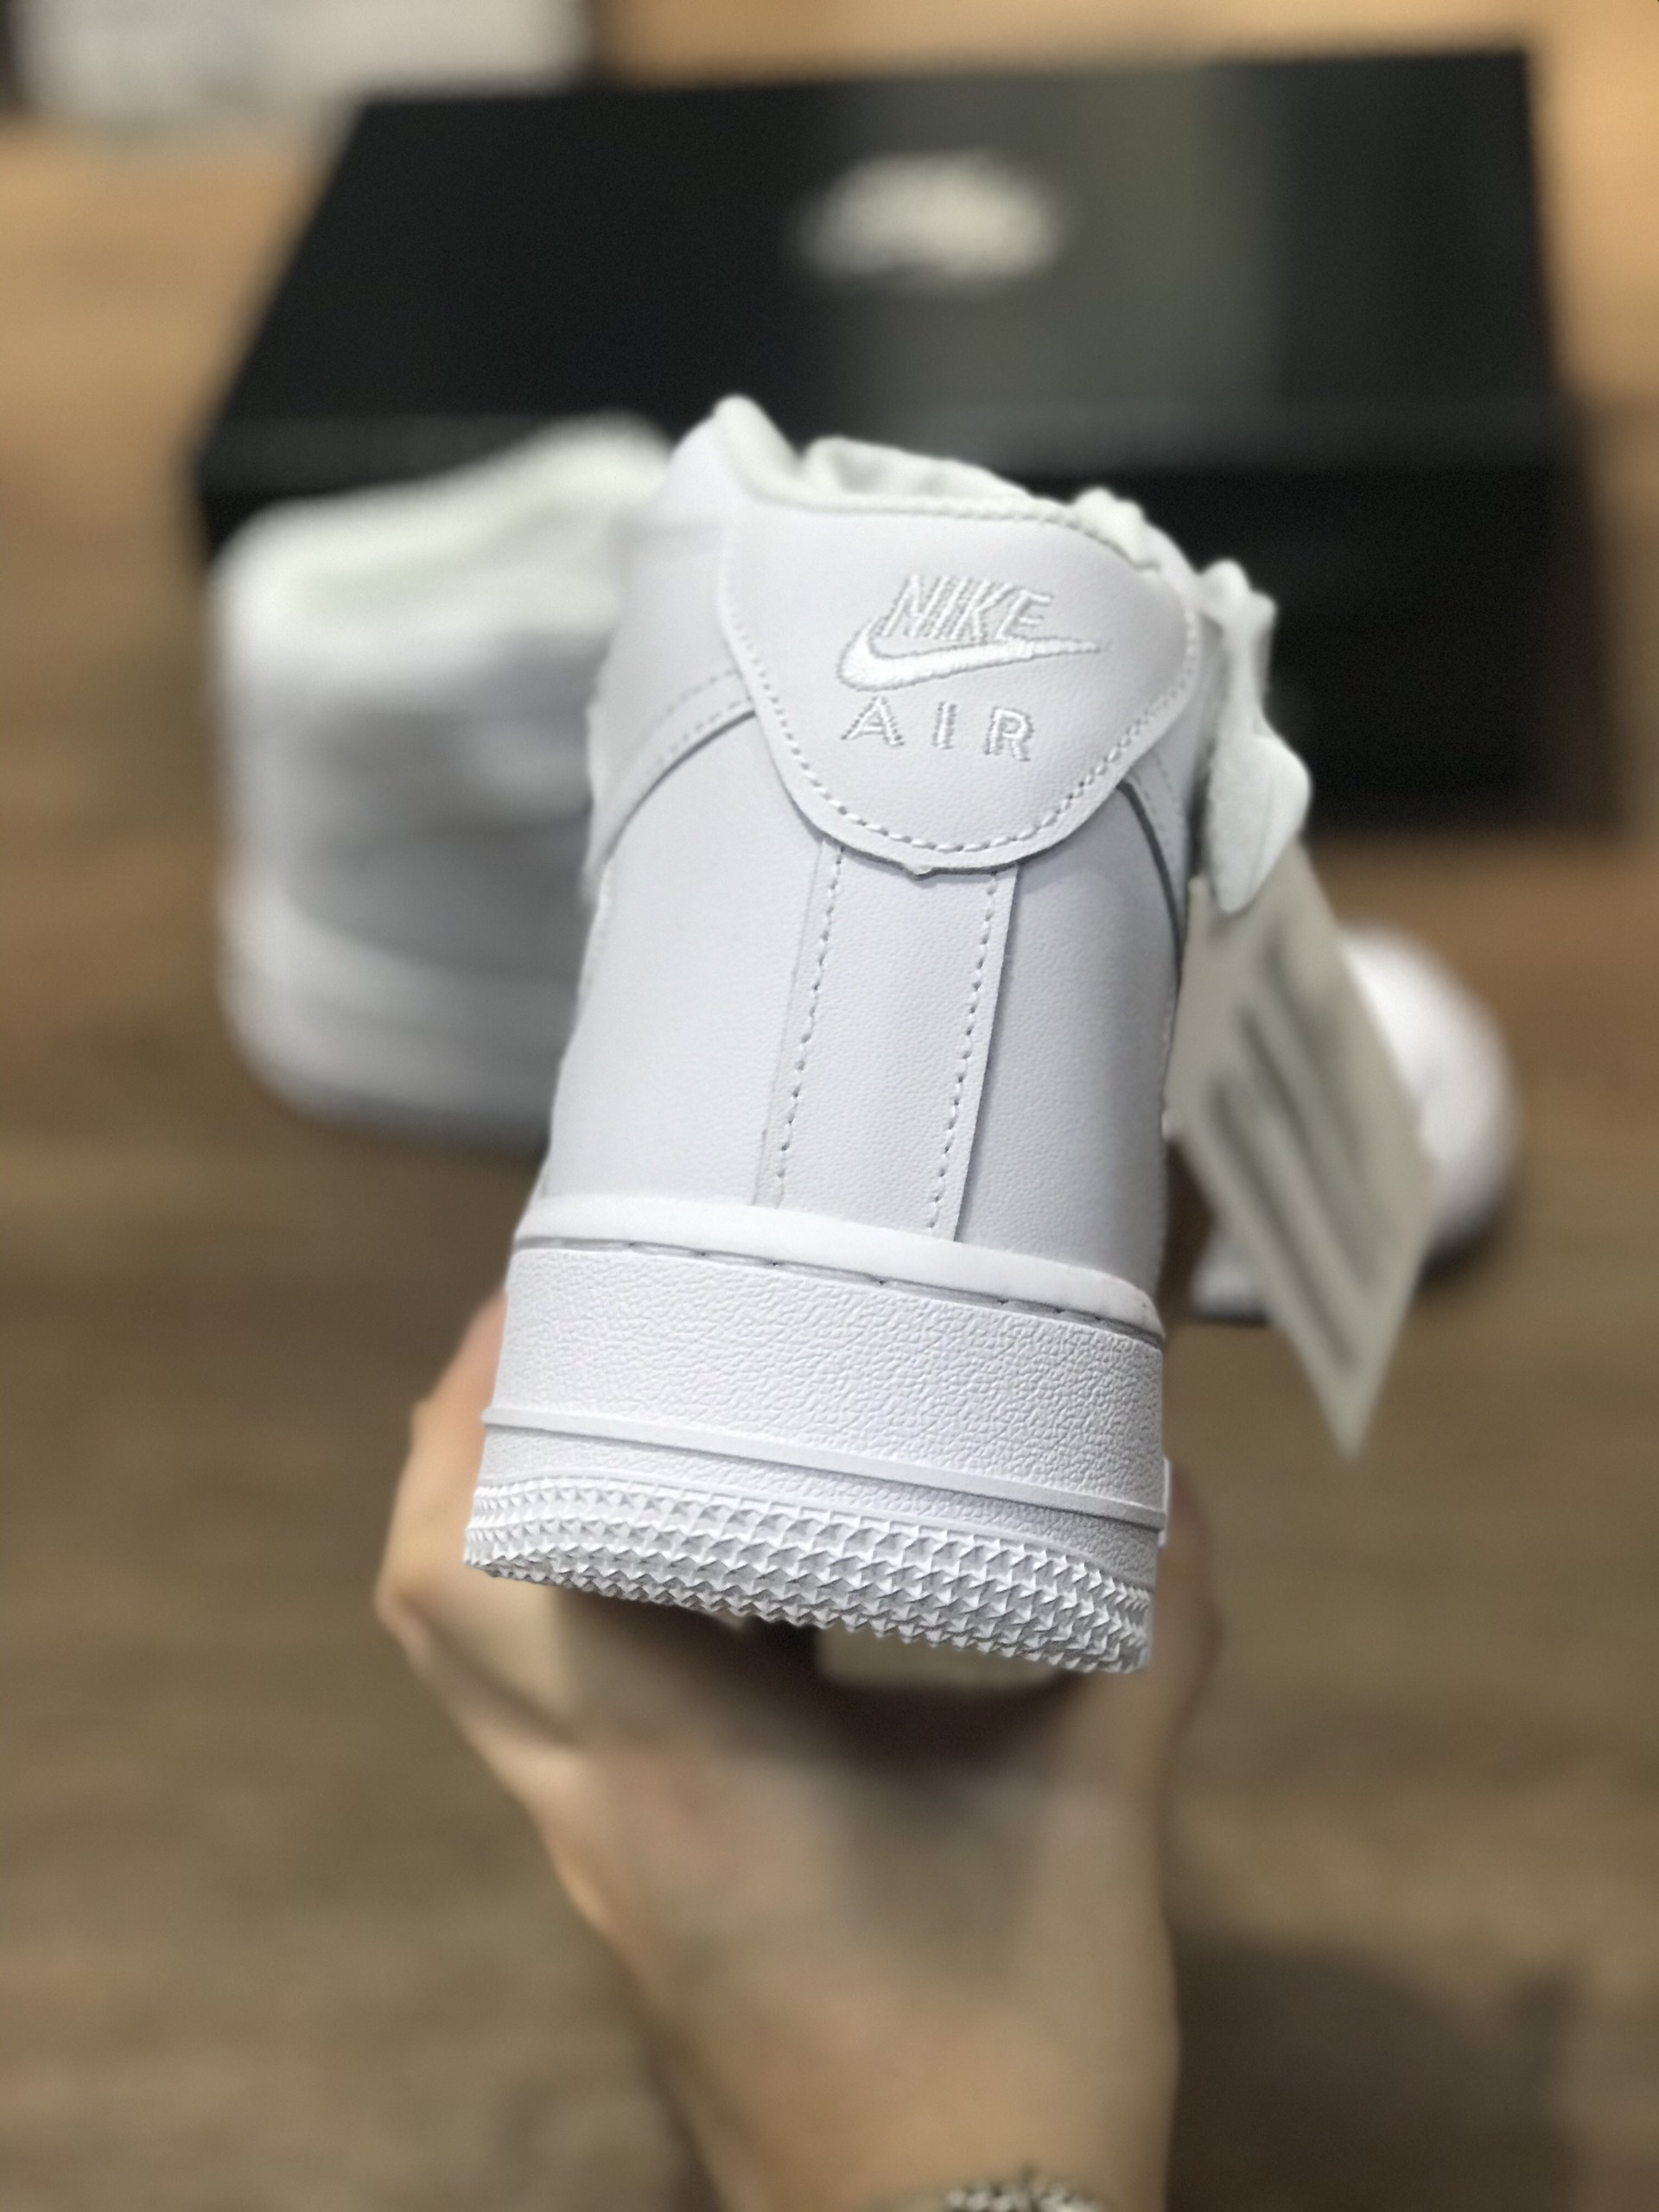 nike air force 1 mid rep, nike air force cổ cao, nike air force 1 cổ cao, nike cổ cao, air force 1 cổ cao, nike force 1 cổ,af1 cổ cao, giày nike air force 1 cổ cao, nike cổ cao trắng, nike air force cao cổ, nike trắng cổ cao